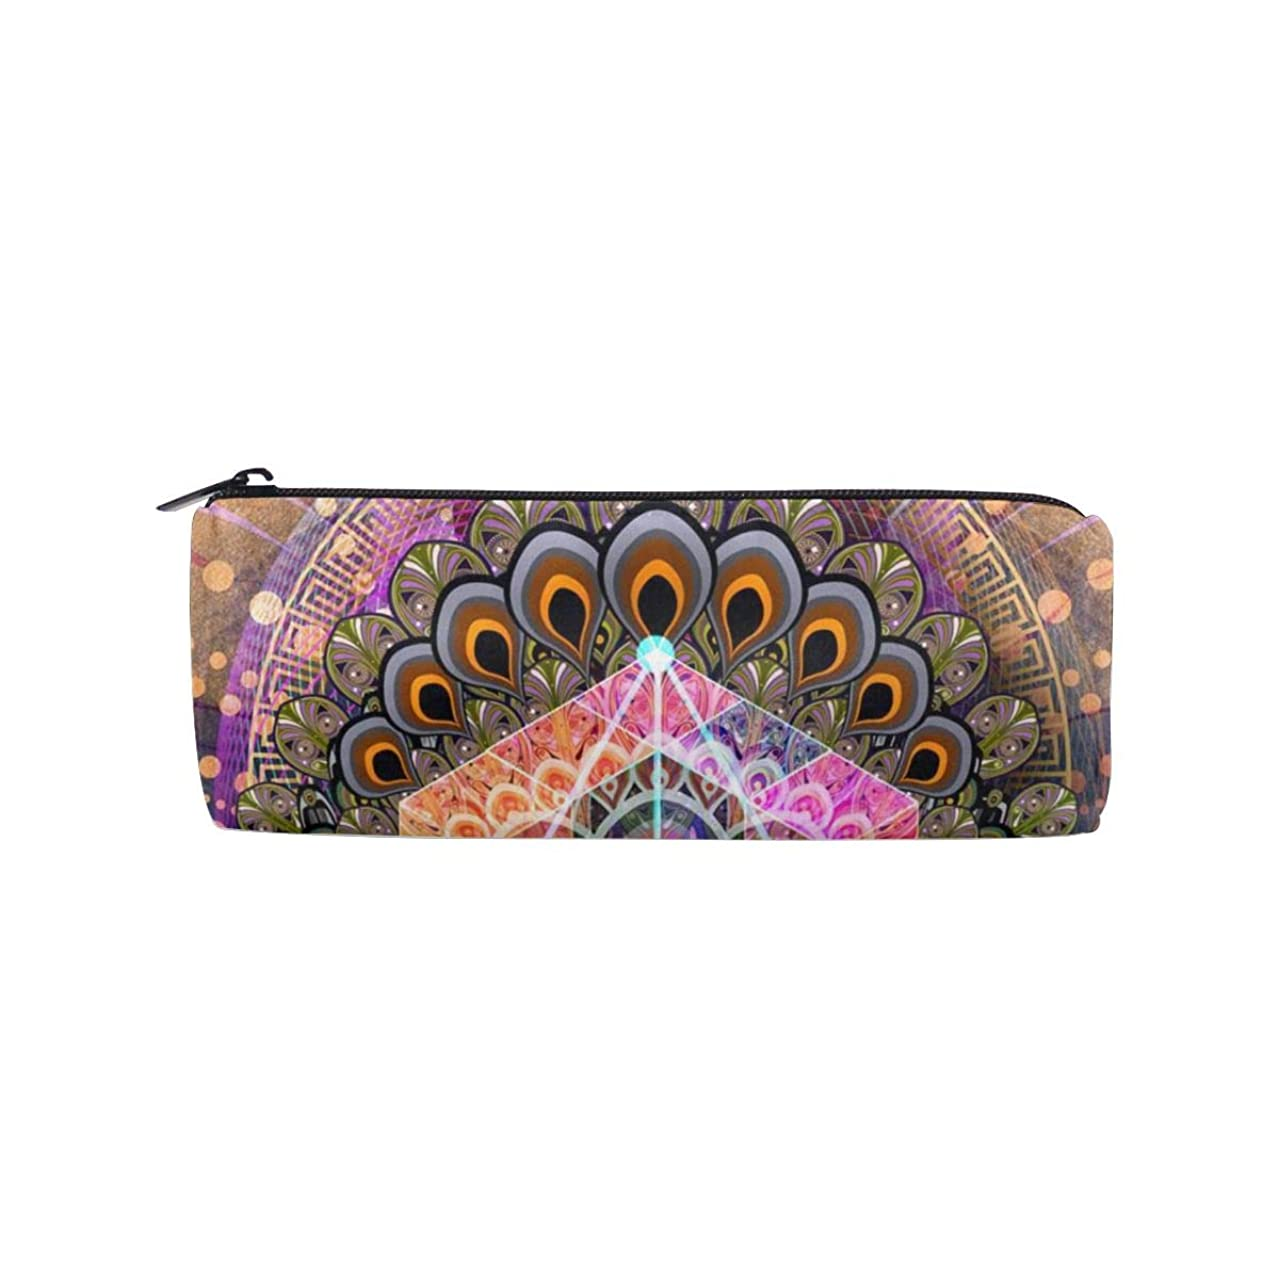 ALLDET Colorful Tattoo Trippy Eye Cylinder Women Cosmetic Bag Zipper Single Layer Travel Storage Makeup Bags Purse